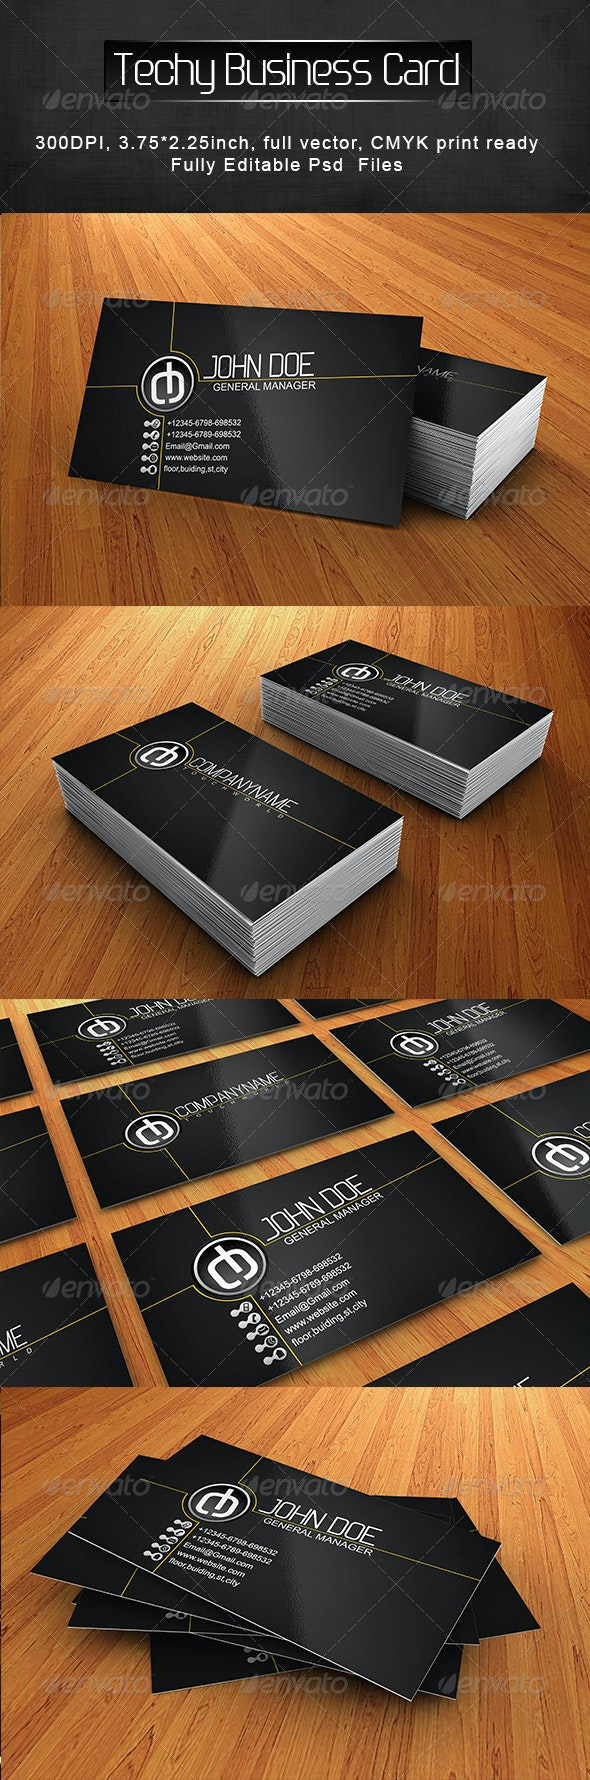 Tech Business Card - Creative Business Cards